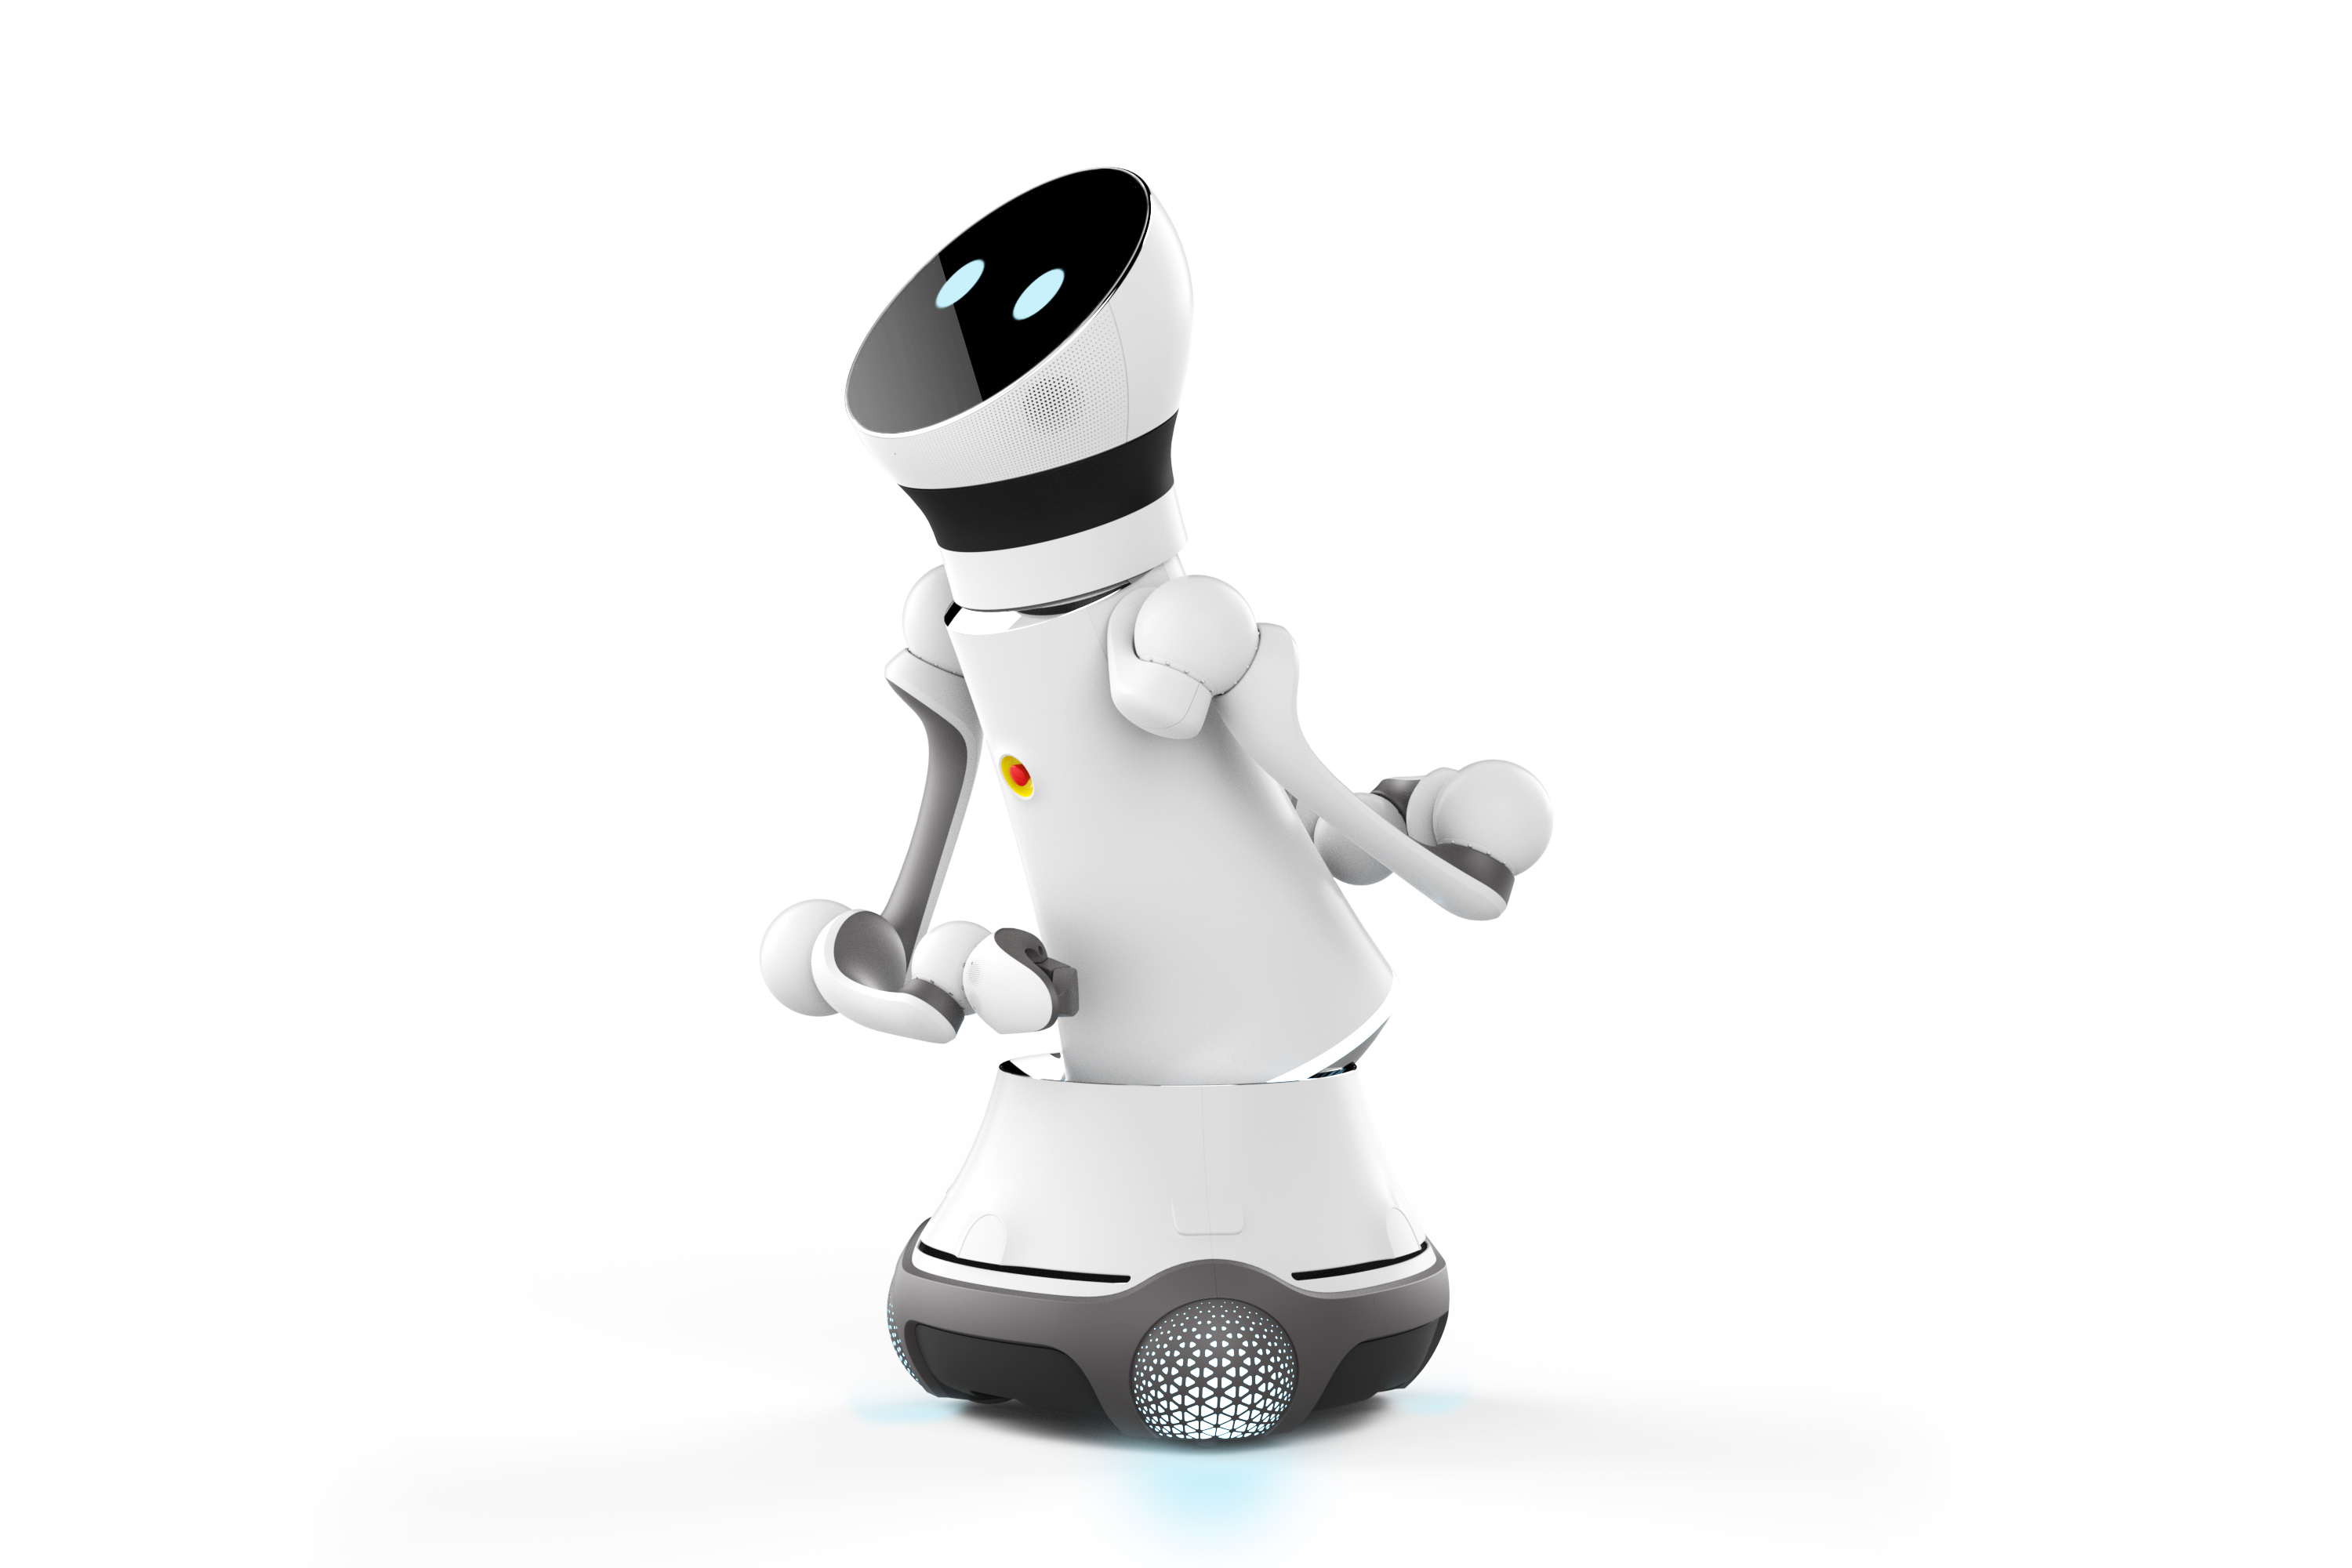 Modulare Roboterplattform Care-O-bot 4